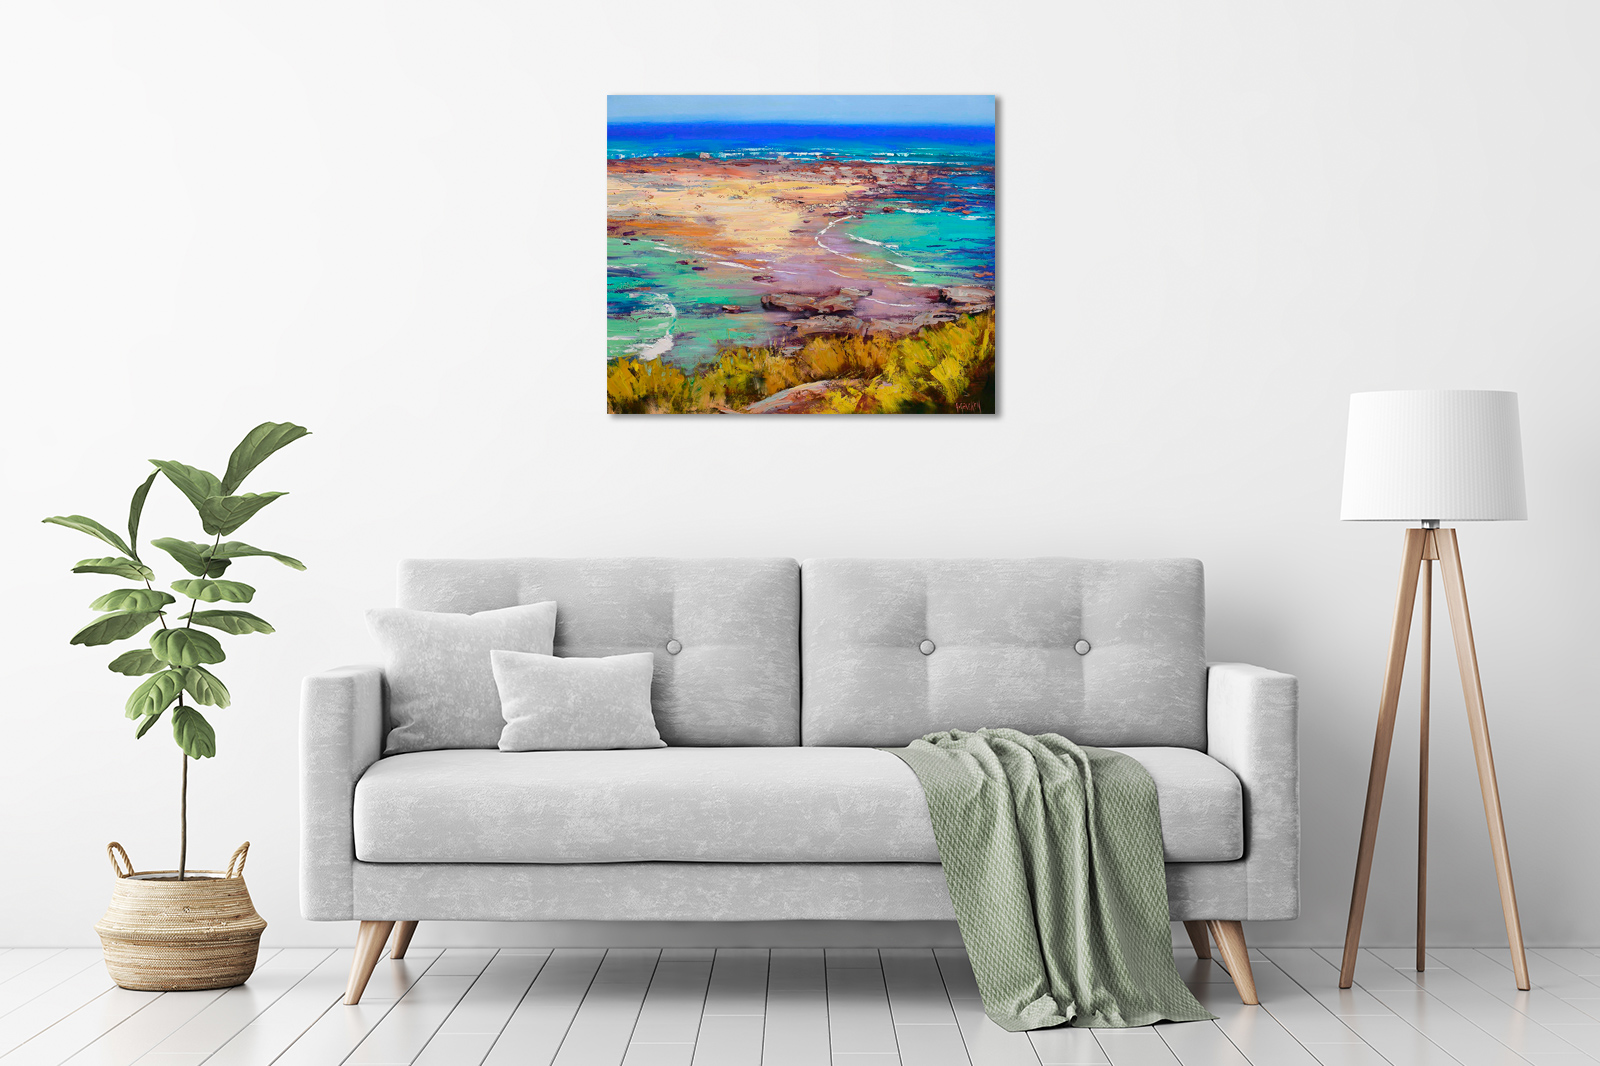 Rocks and Surf, Norah Head in a room